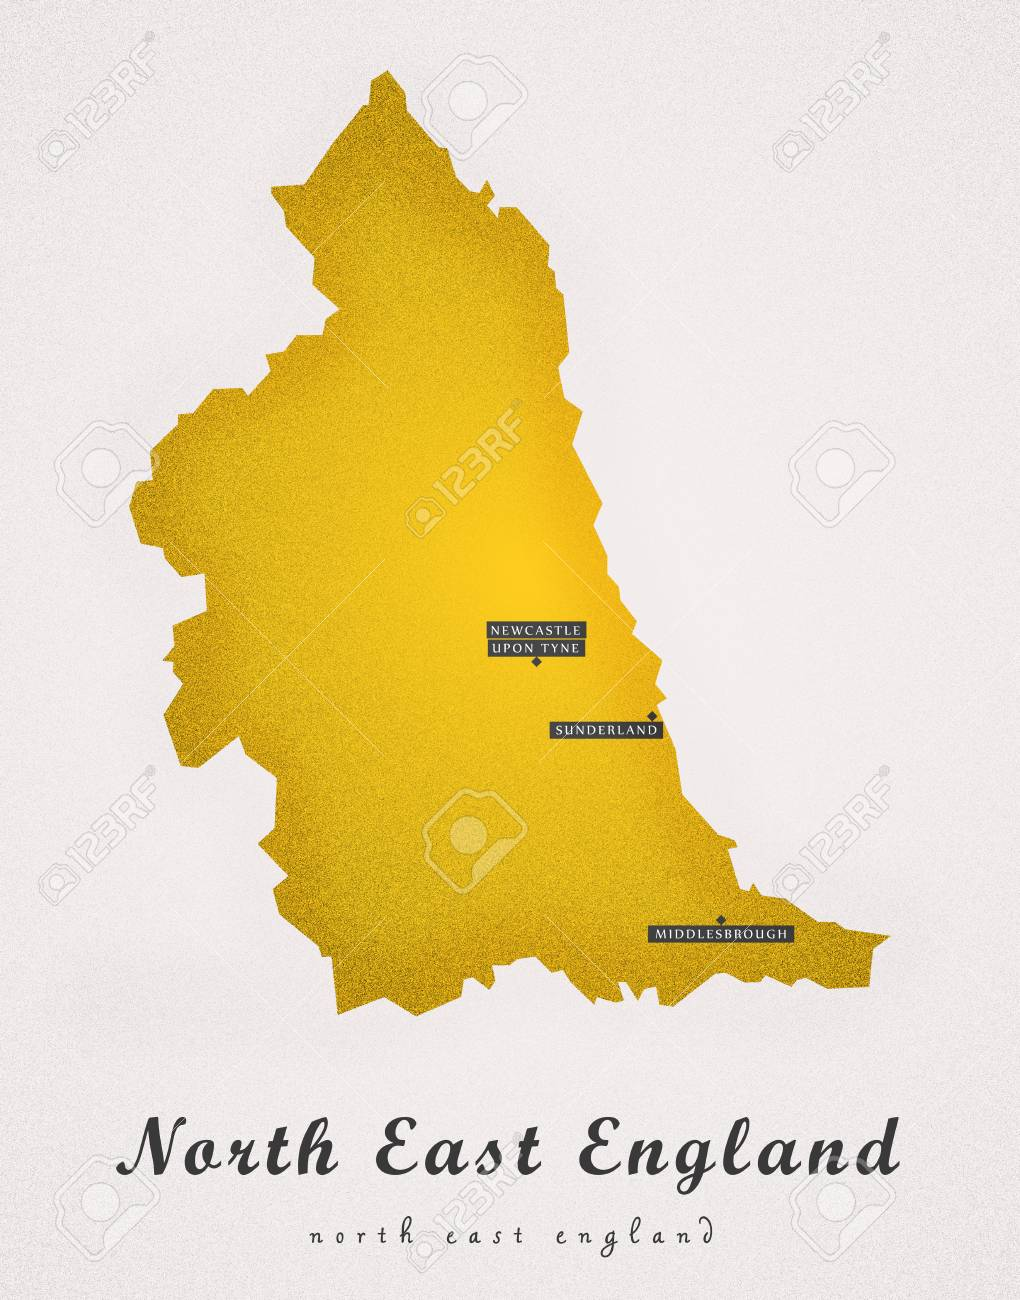 Map Of The East Of England.North East England Uk Art Map